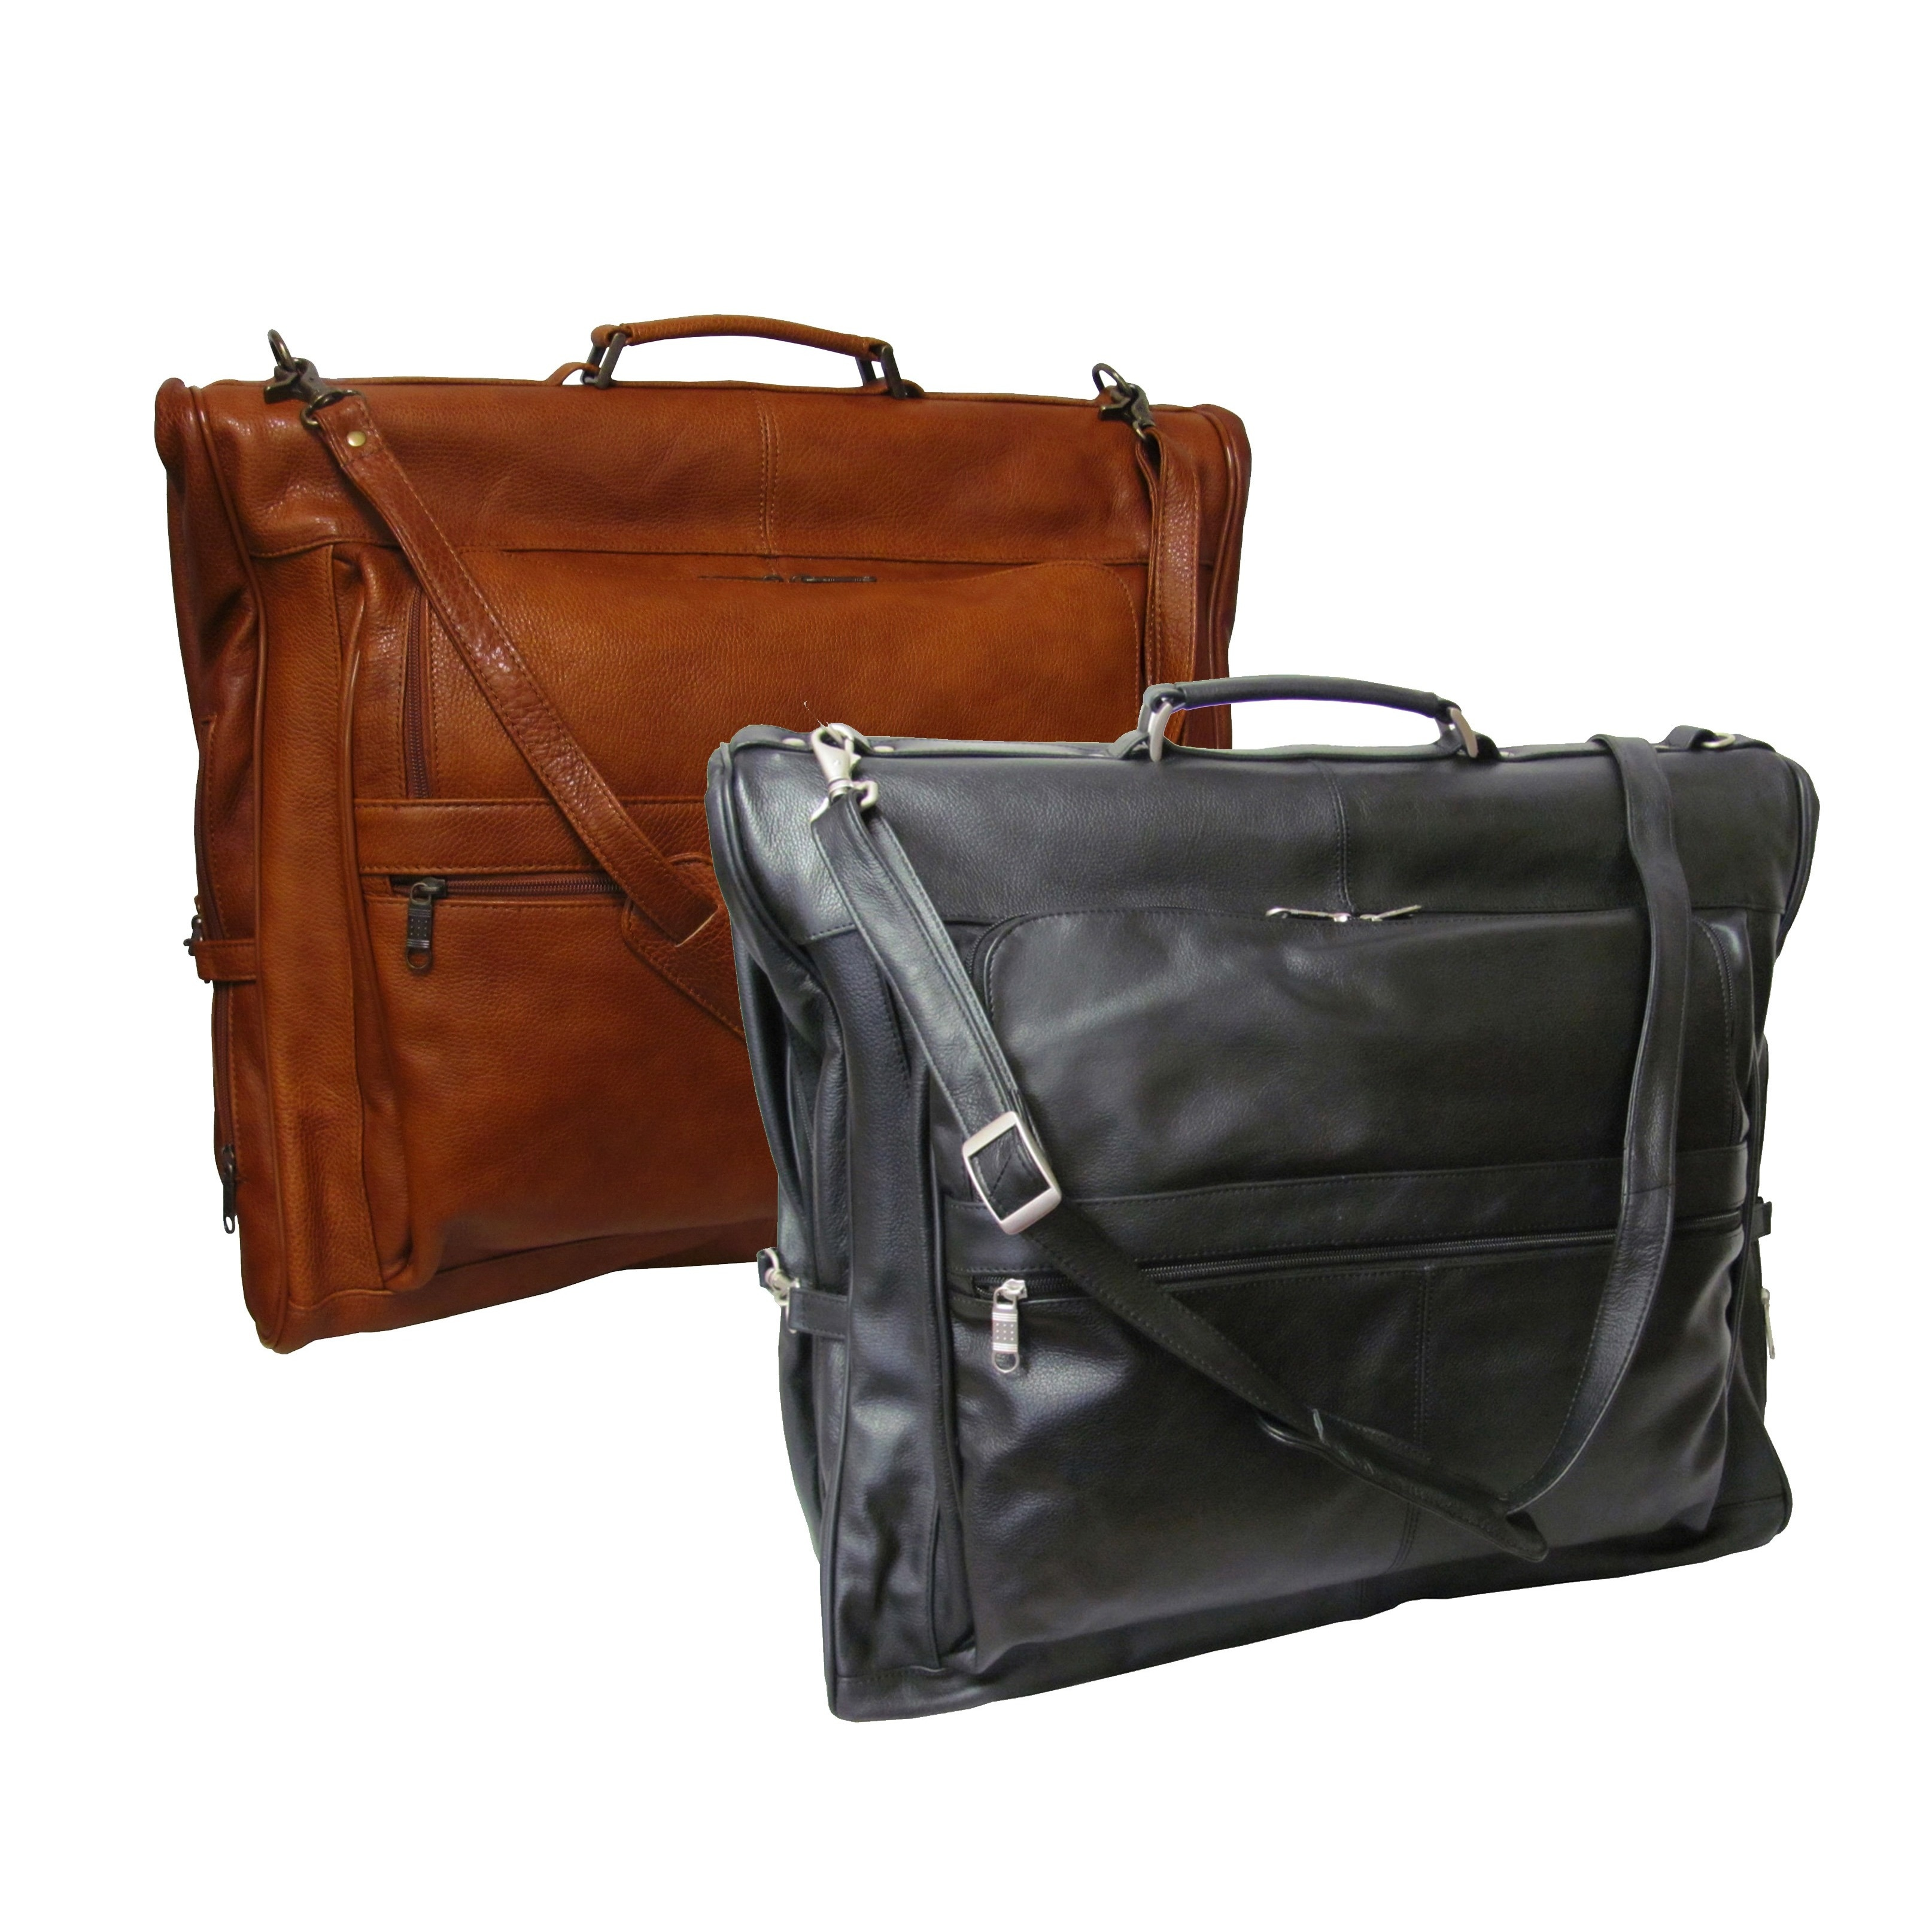 Shop Amerileather Cowhide Leather 3-suit Garment Bag - Free Shipping ... 8b55b6adbb273